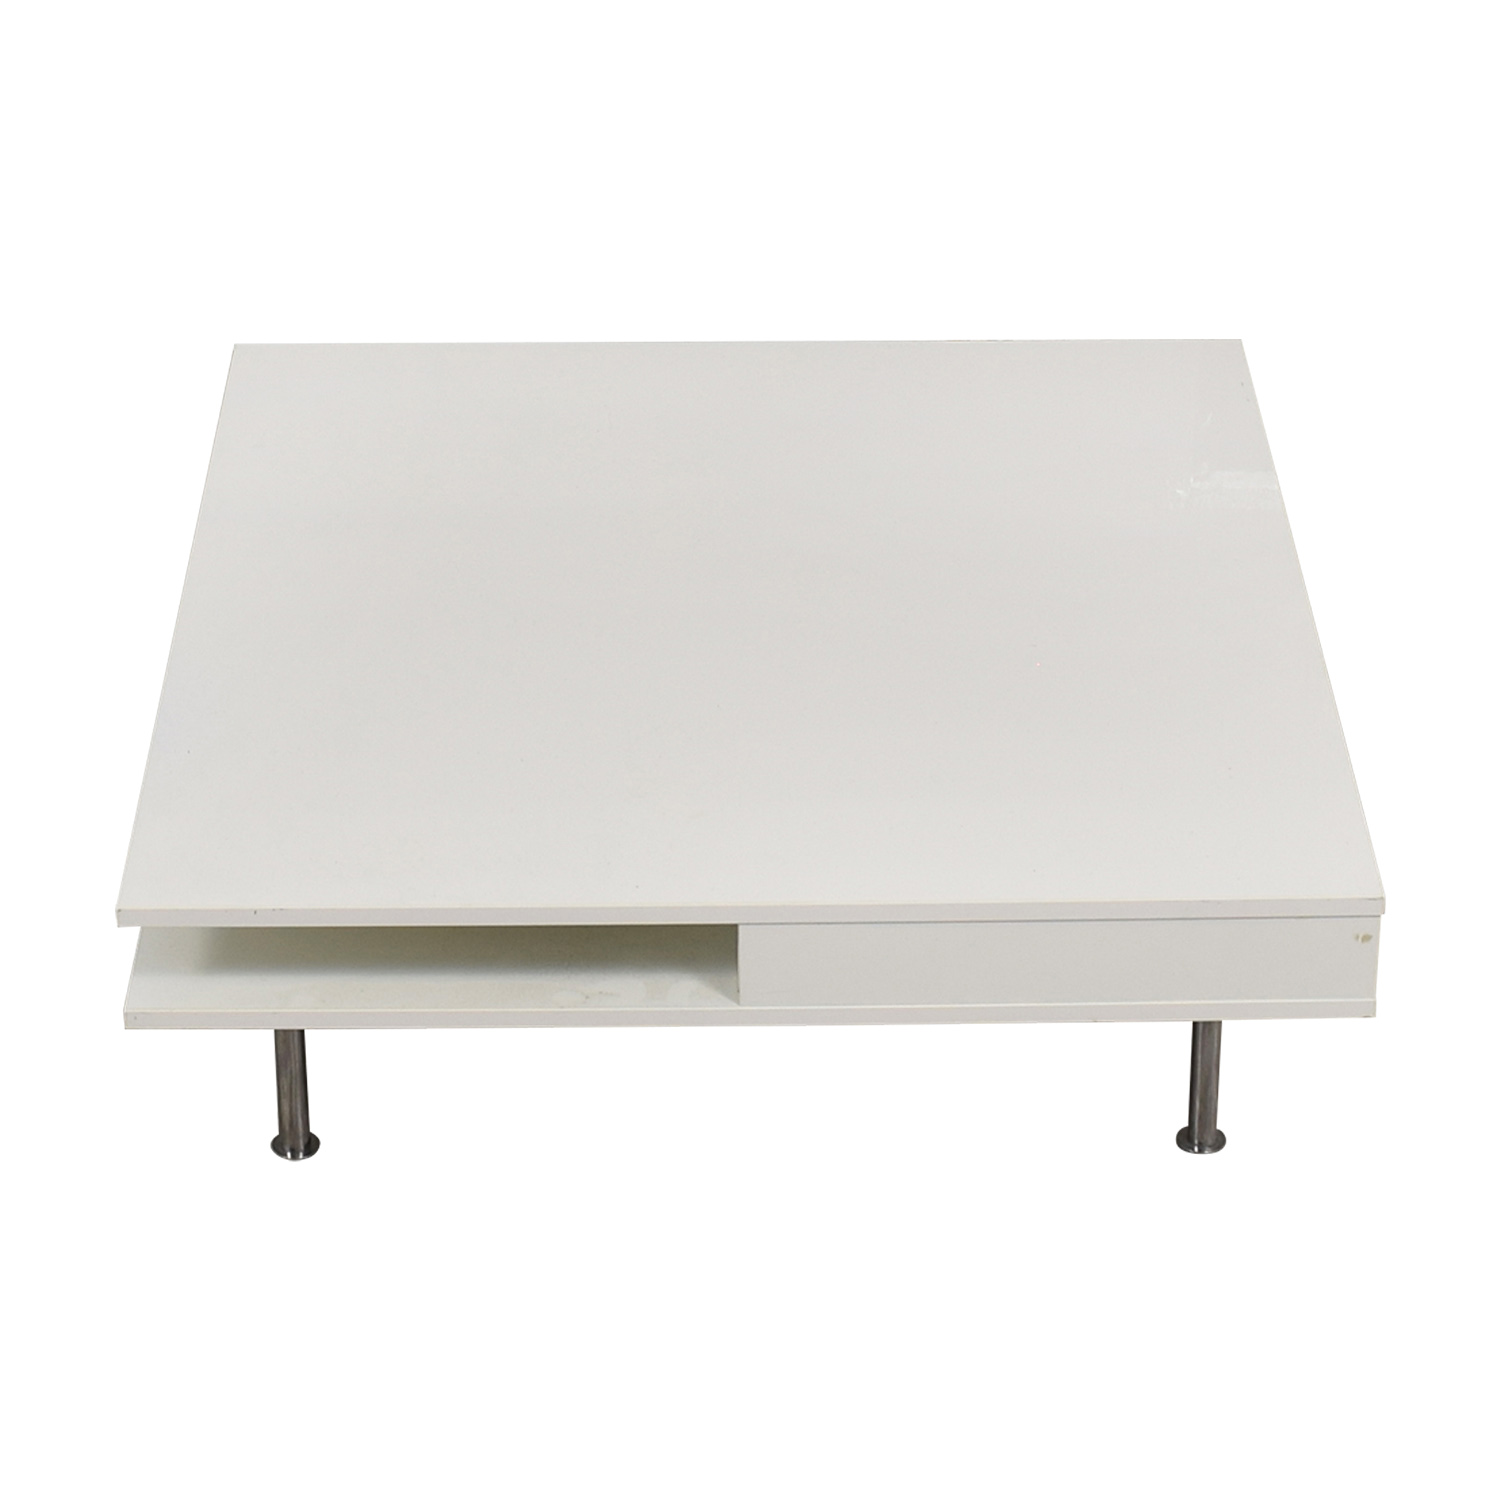 IKEA IKEA White Two-Drawer Low Coffee Table second hand